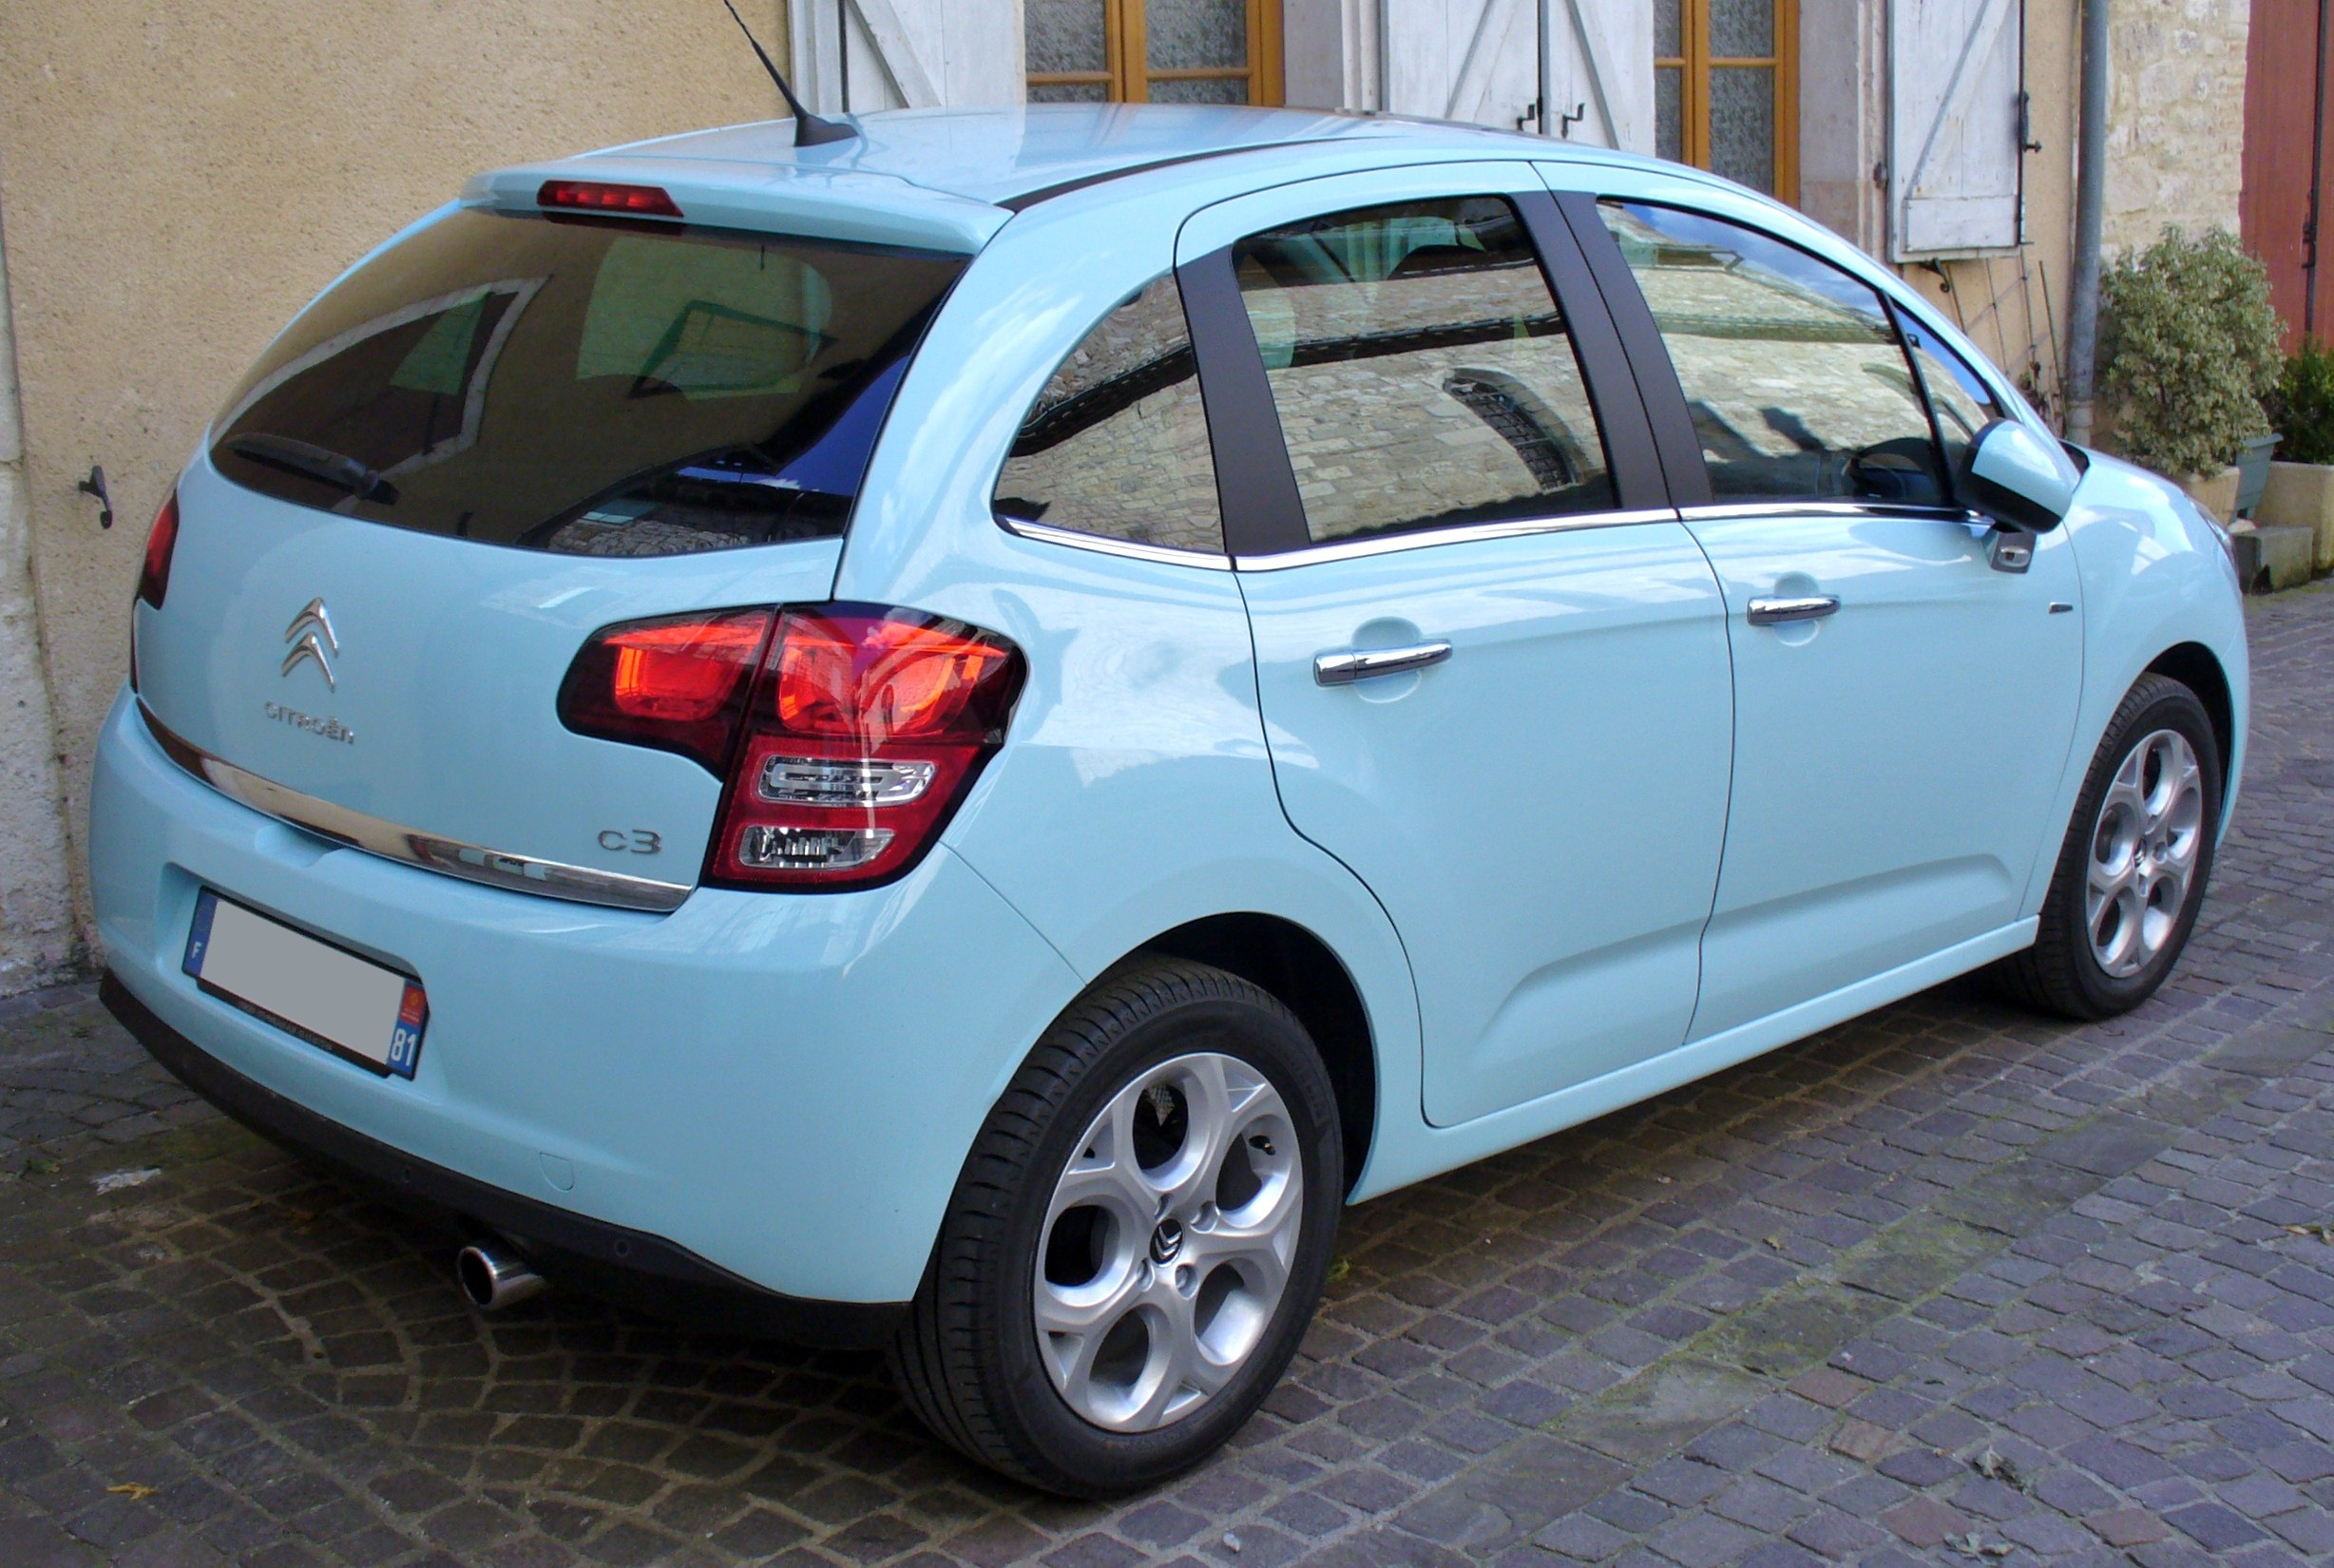 citroen c3 wallpaper #10